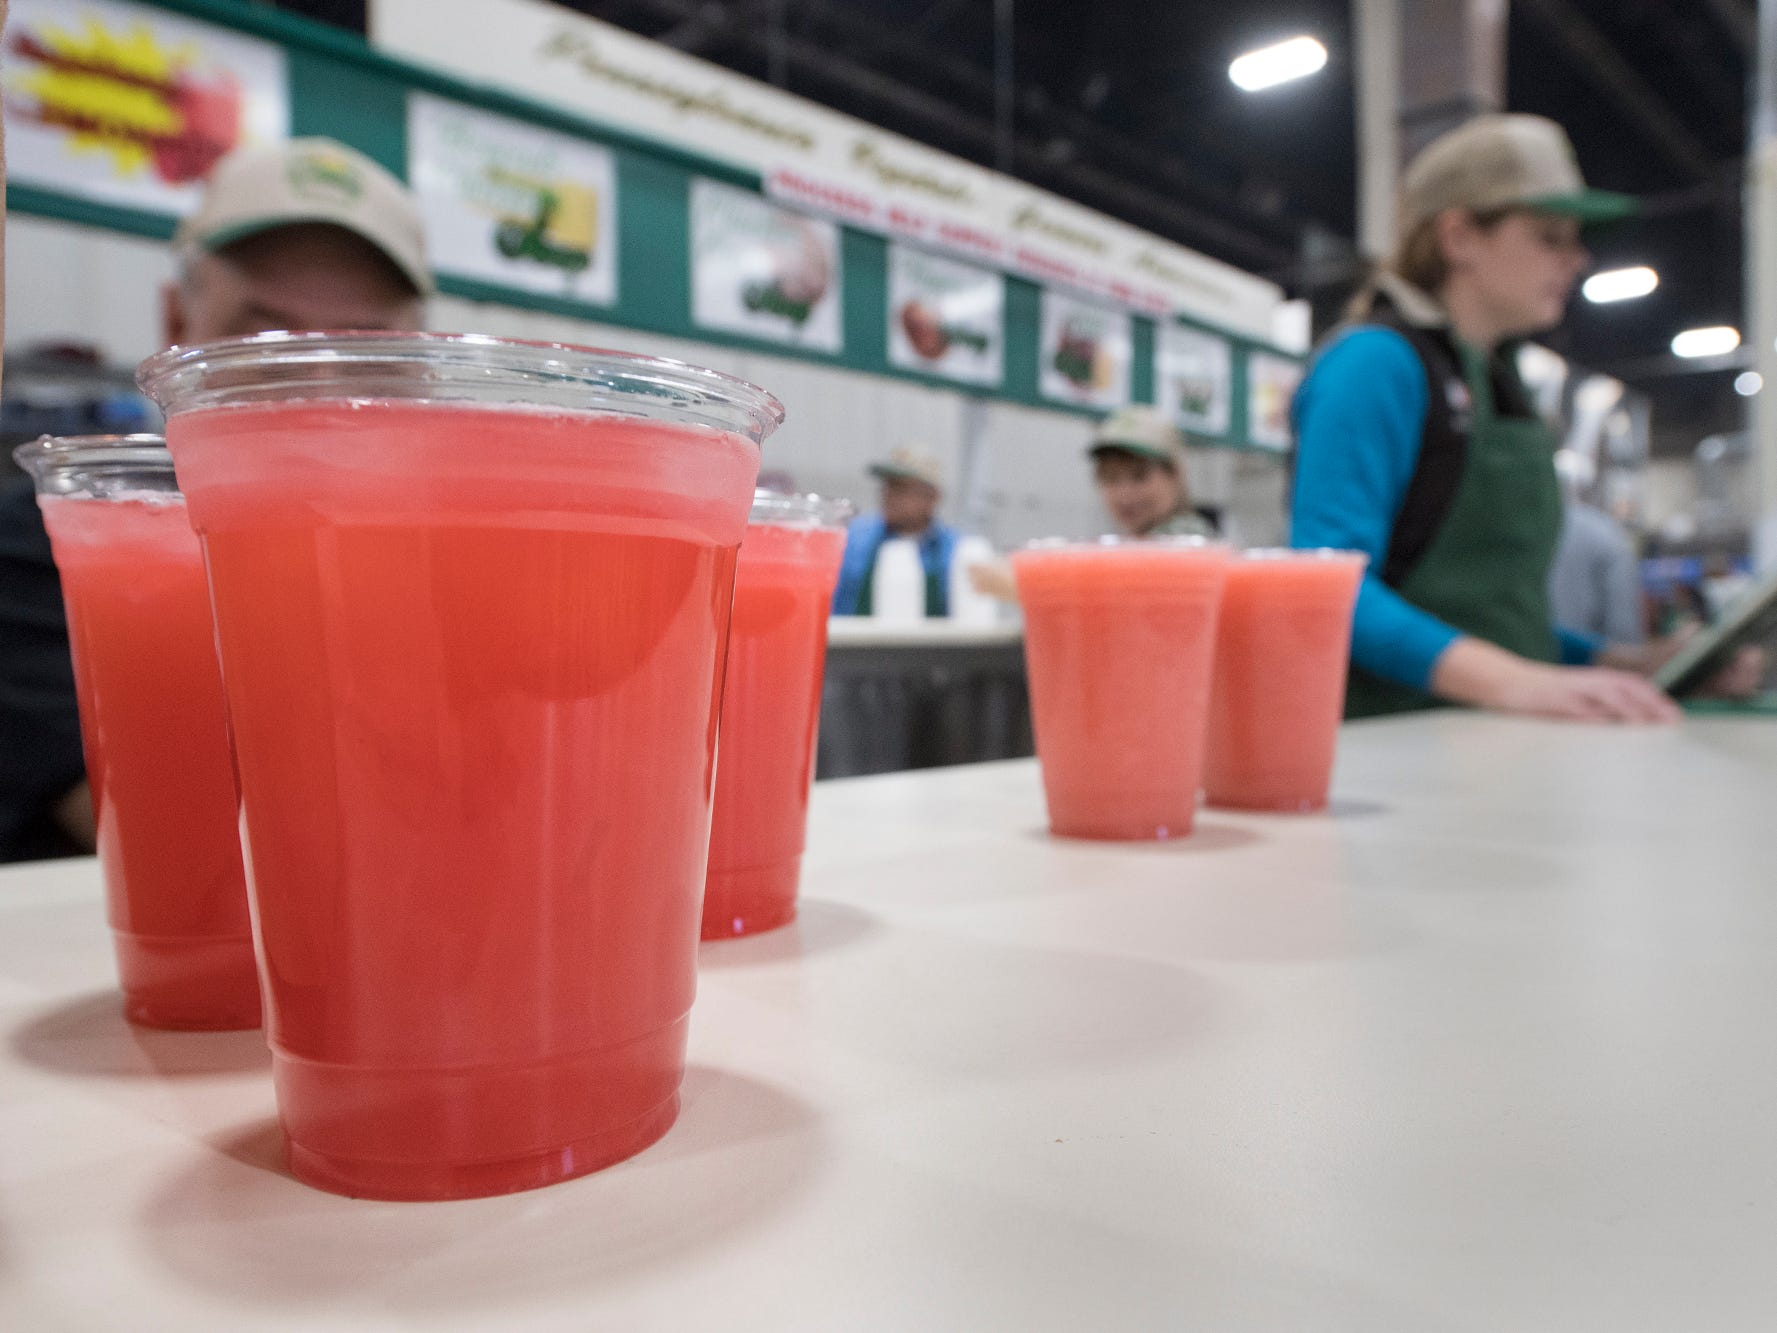 Fruit drinks ready to refresh at the food court during The 103rd Pennsylvania Farm Show in Harrisburg Sunday January 6, 2019.